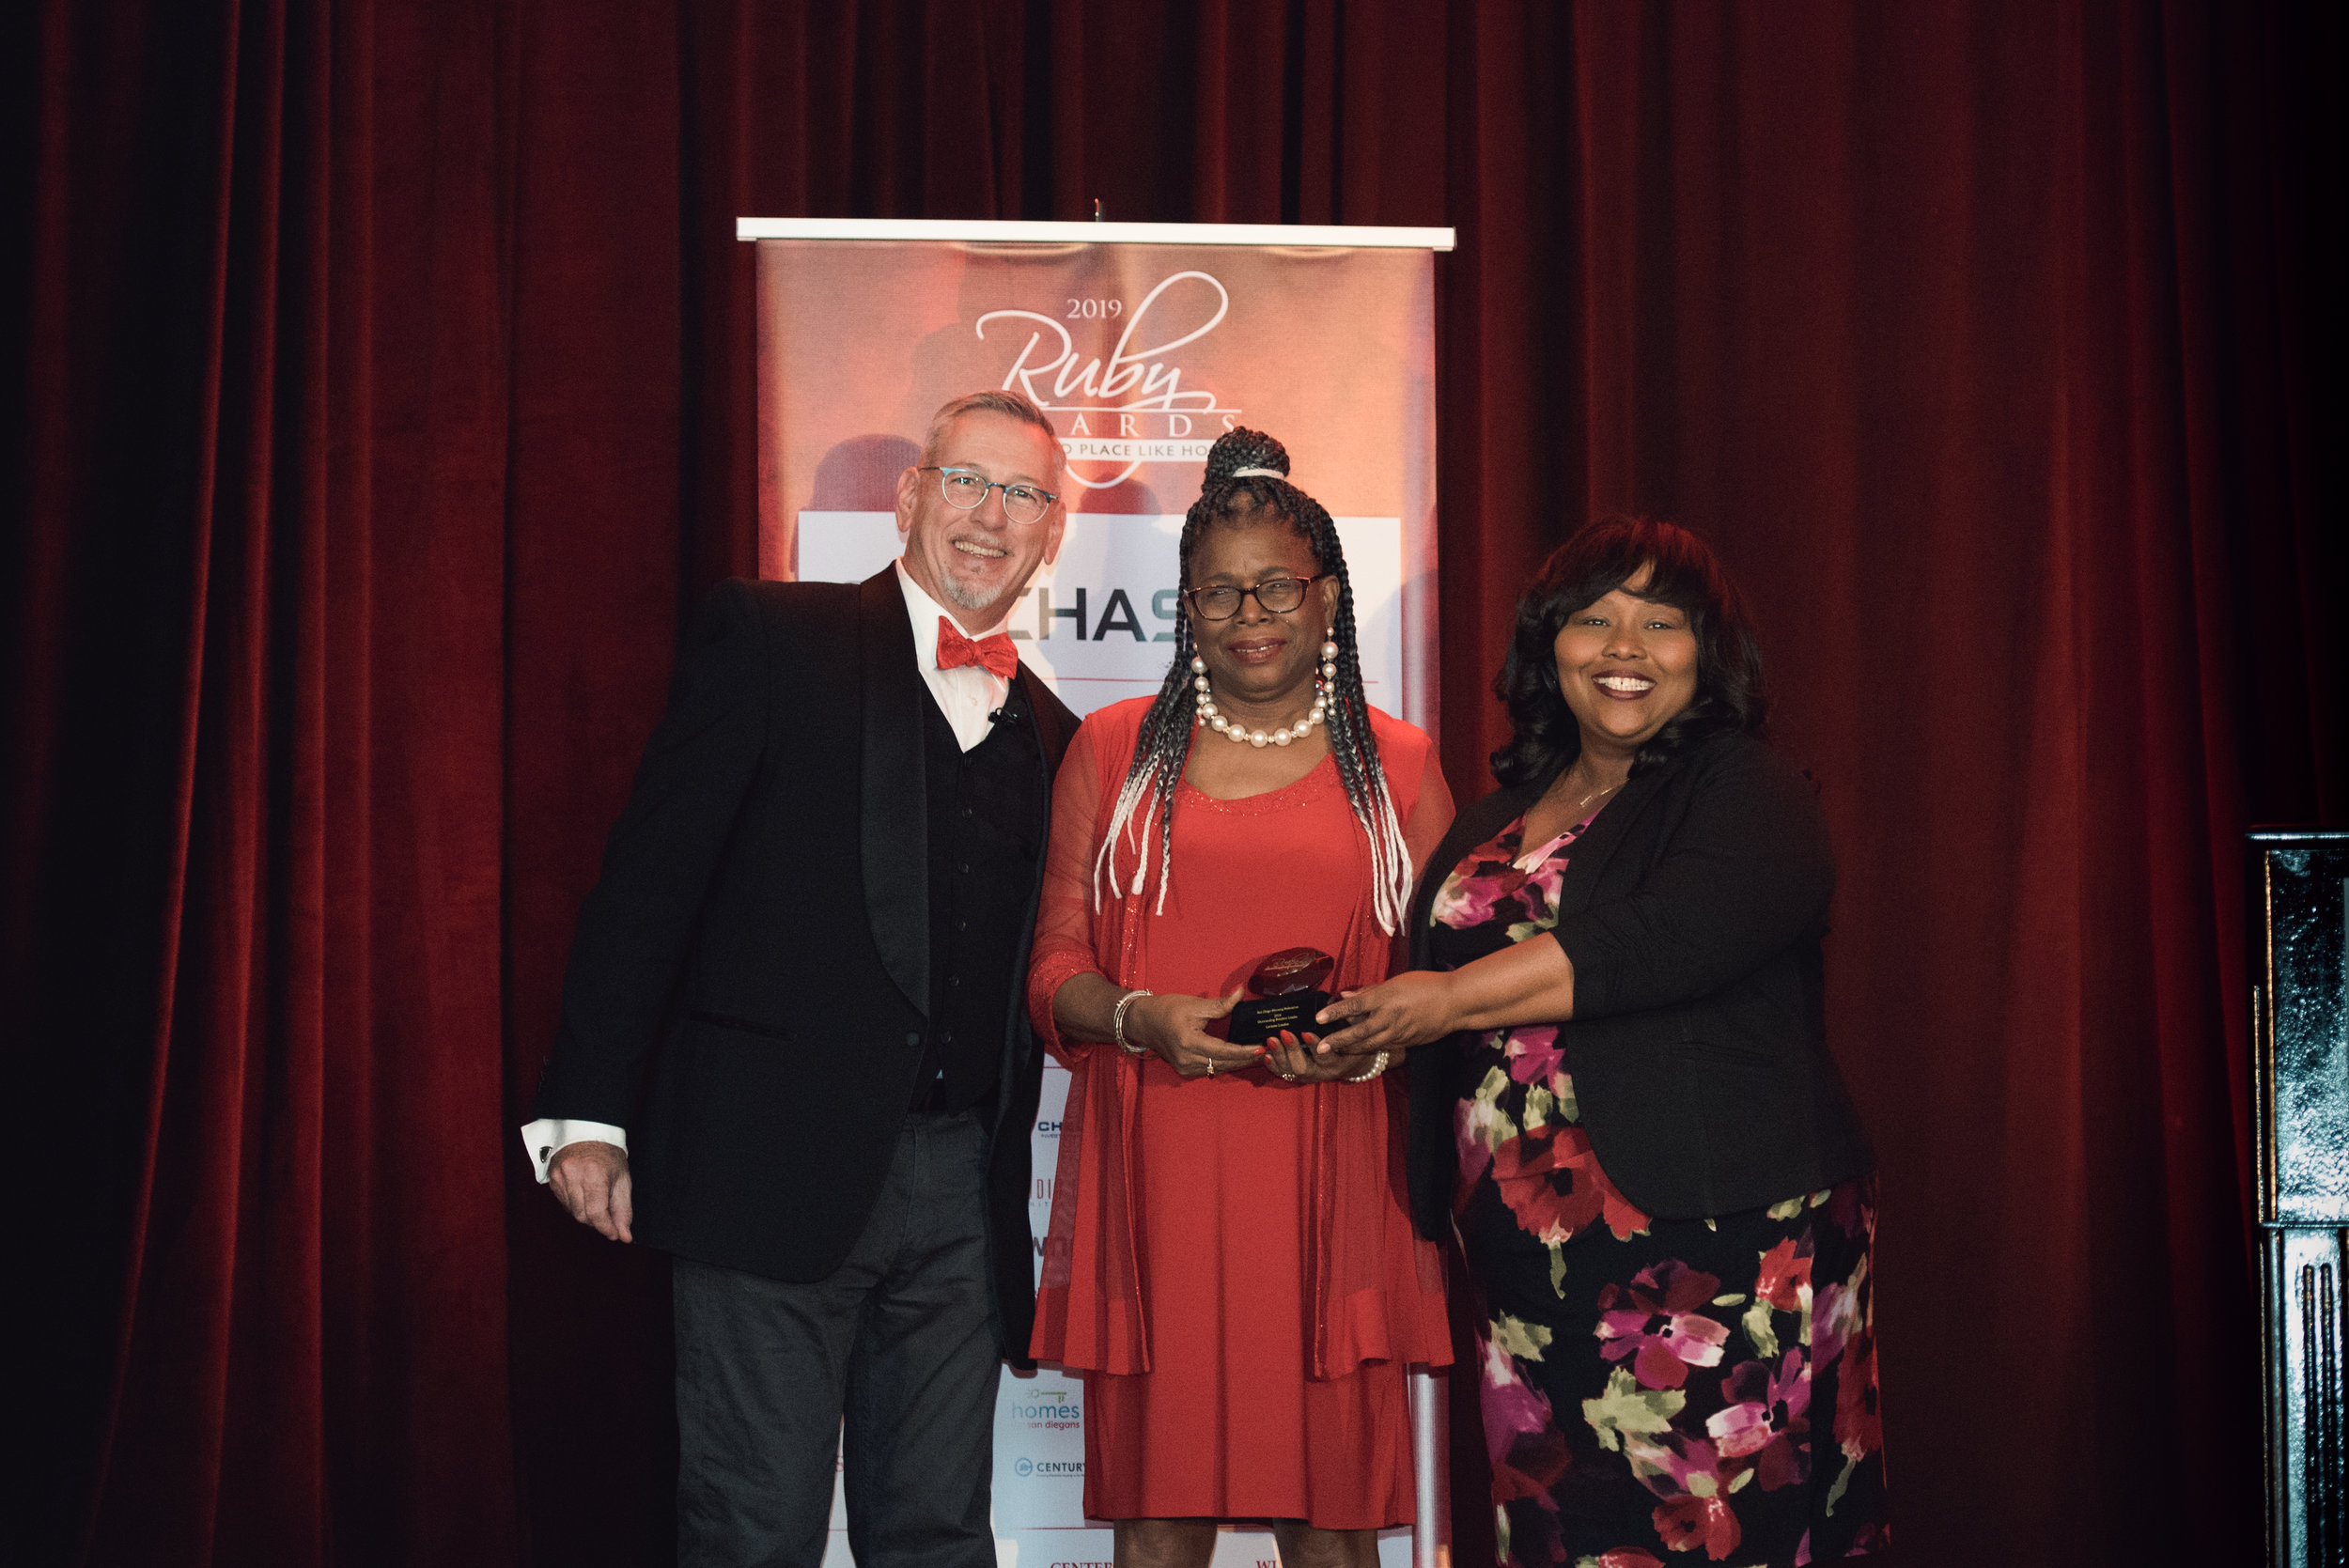 Lavearn London won Outstanding Resident Leader, May 2019